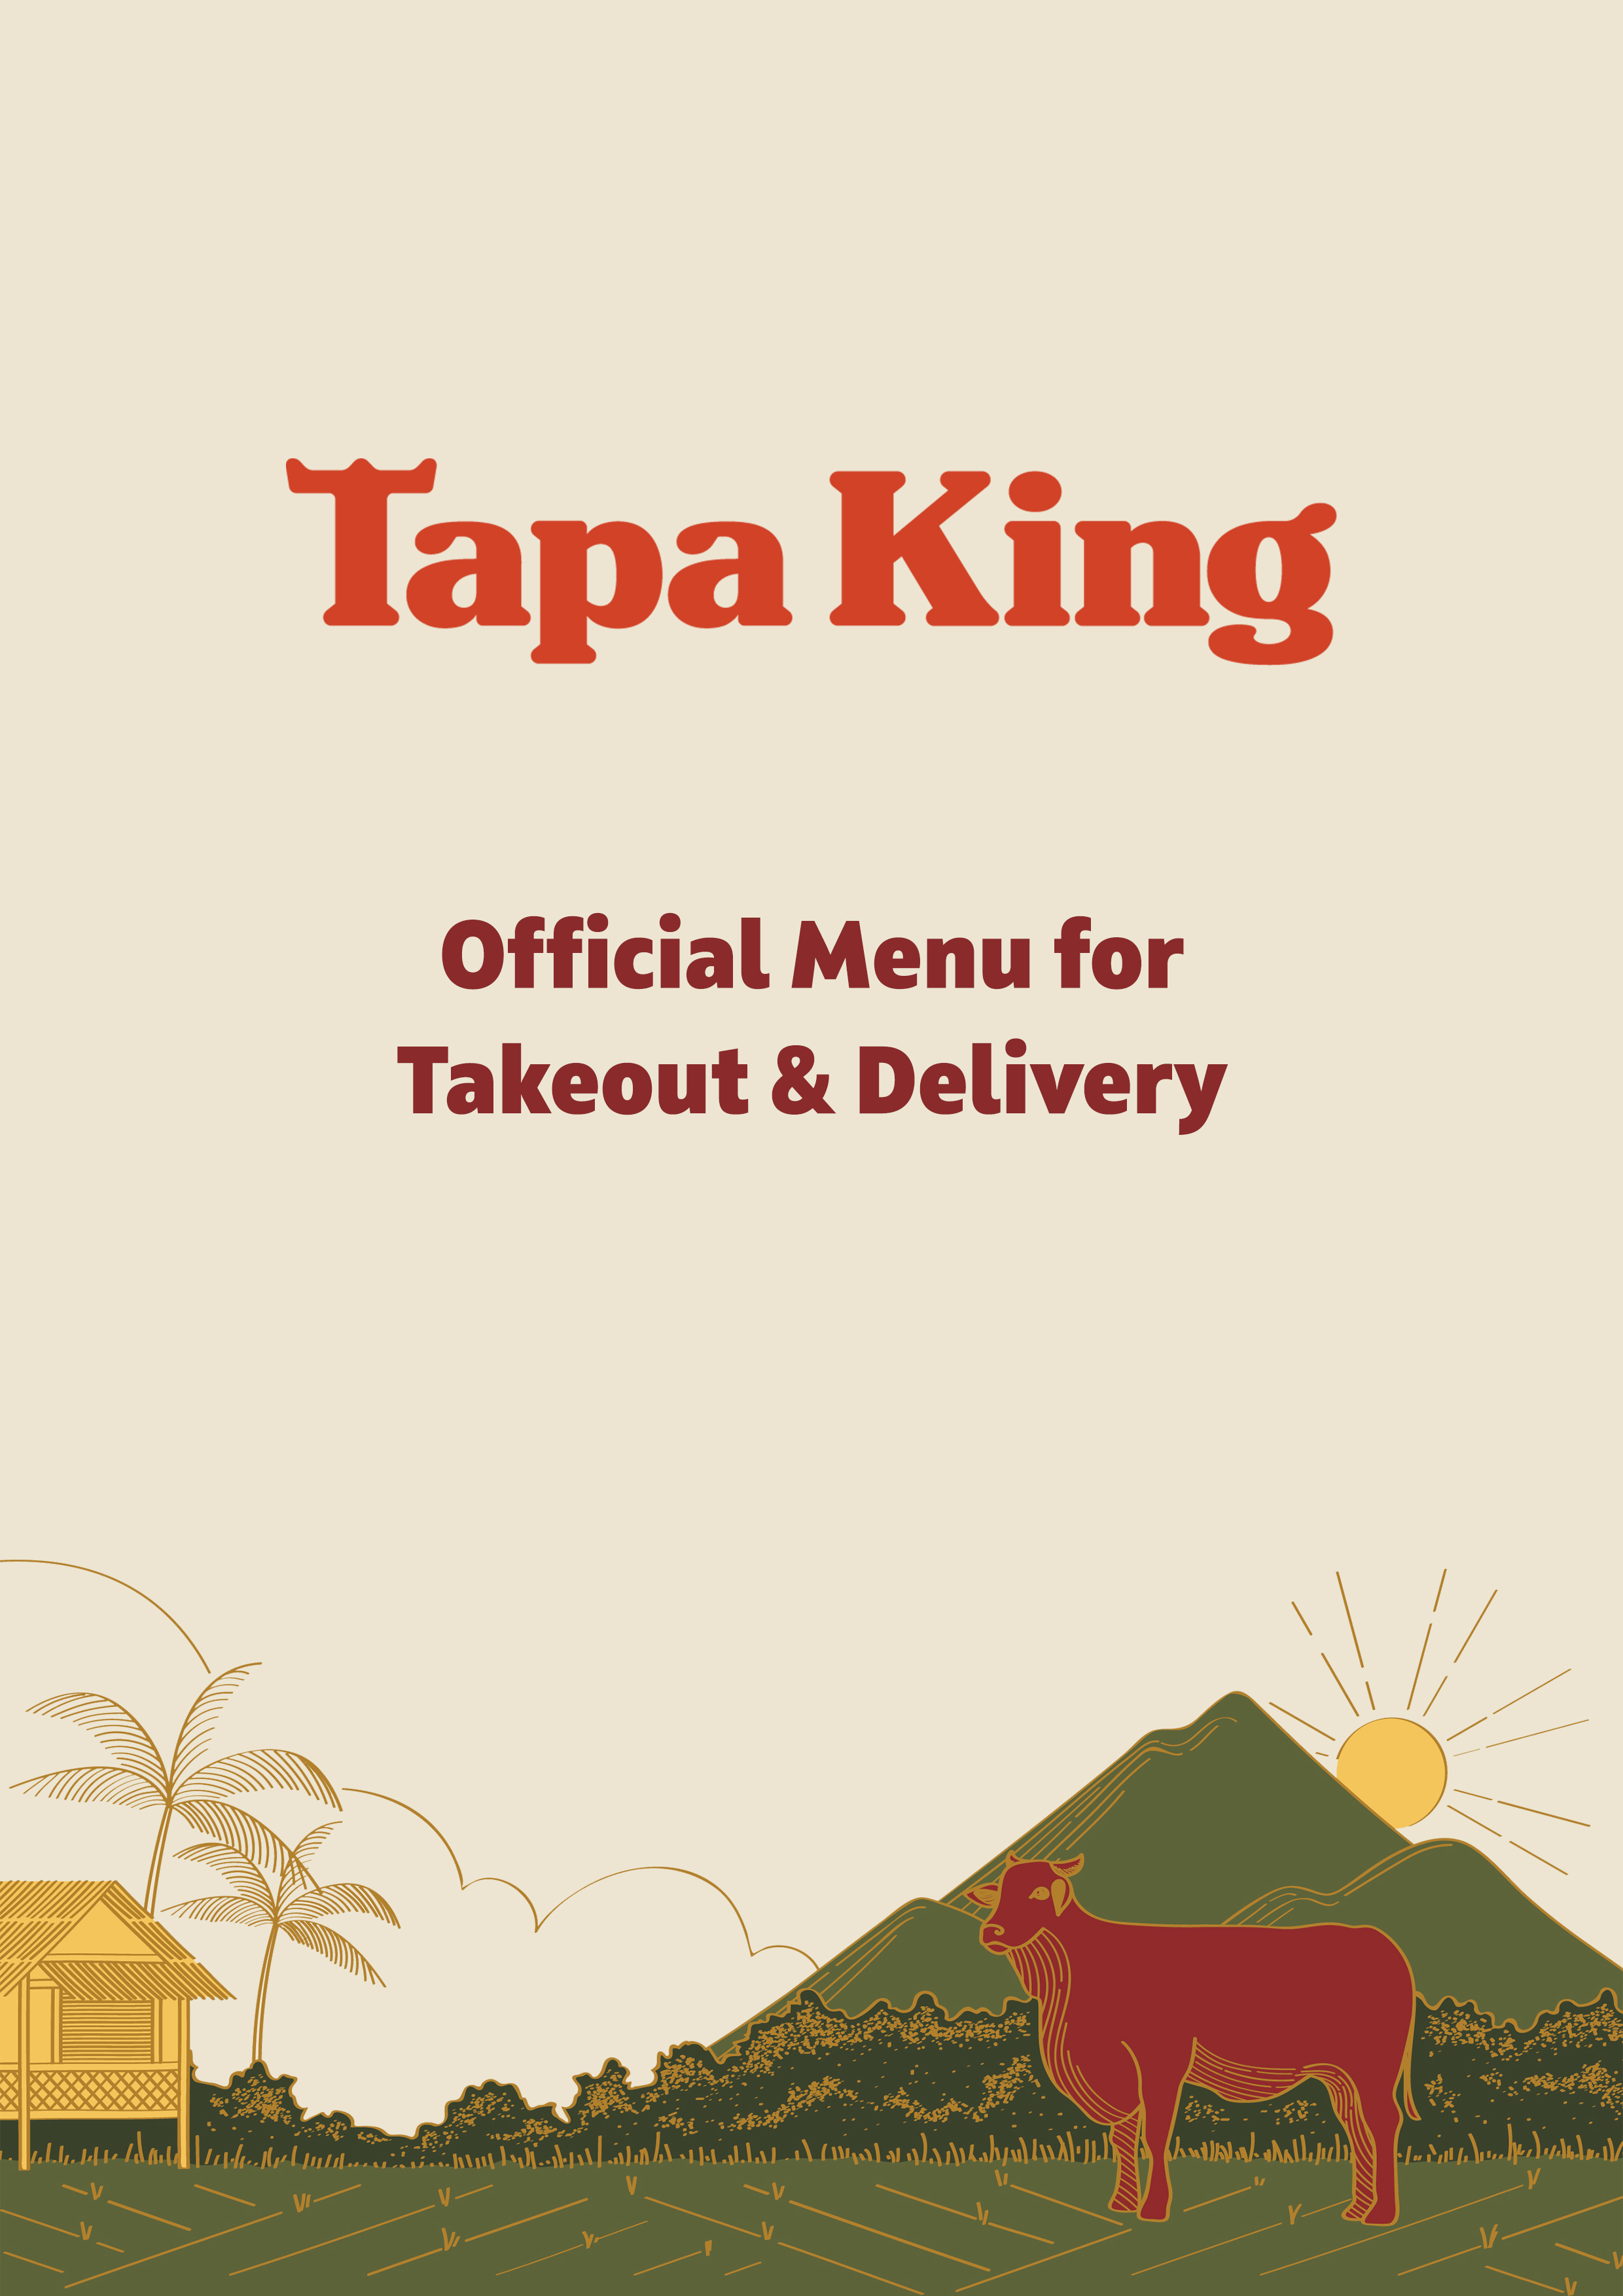 Takeout & Delivery Menu Cover